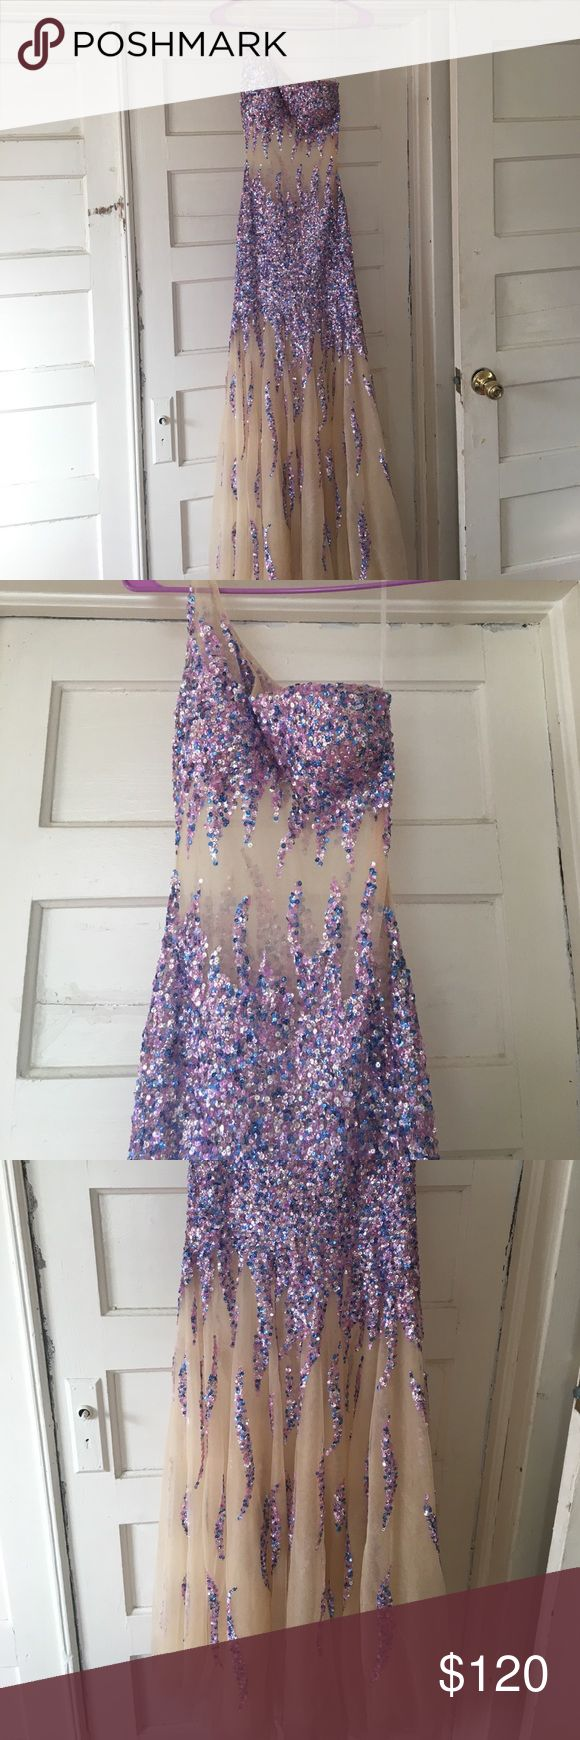 Prom or special occasion dress **sequin** Perfect for prom or New Years! Sequin / glitter blue and purple sheer tan dress --- i Love it! Received ample compliments.. just don't have anything in the future to wear it too. Dresses Prom